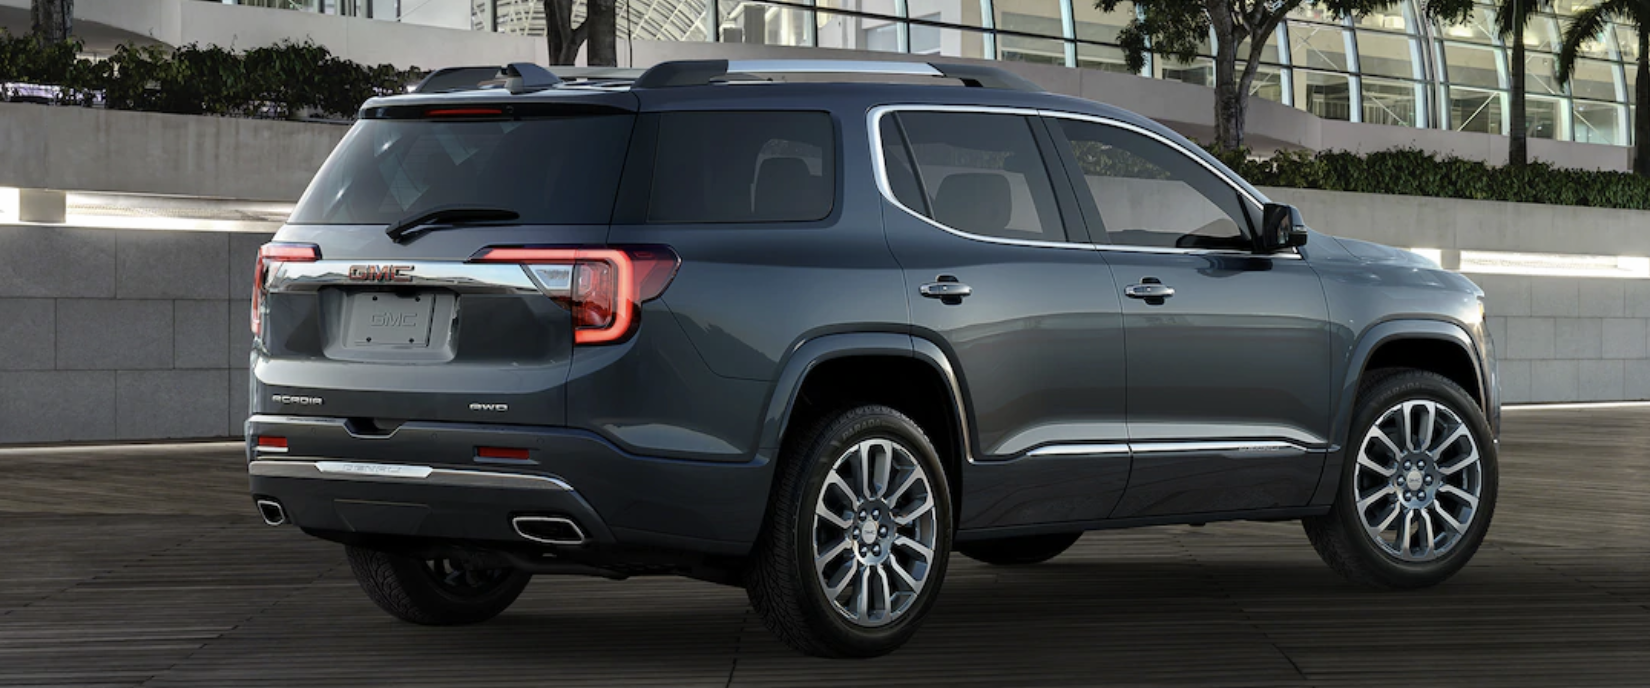 79 Great New Gmc Acadia 2020 Specs with New Gmc Acadia 2020